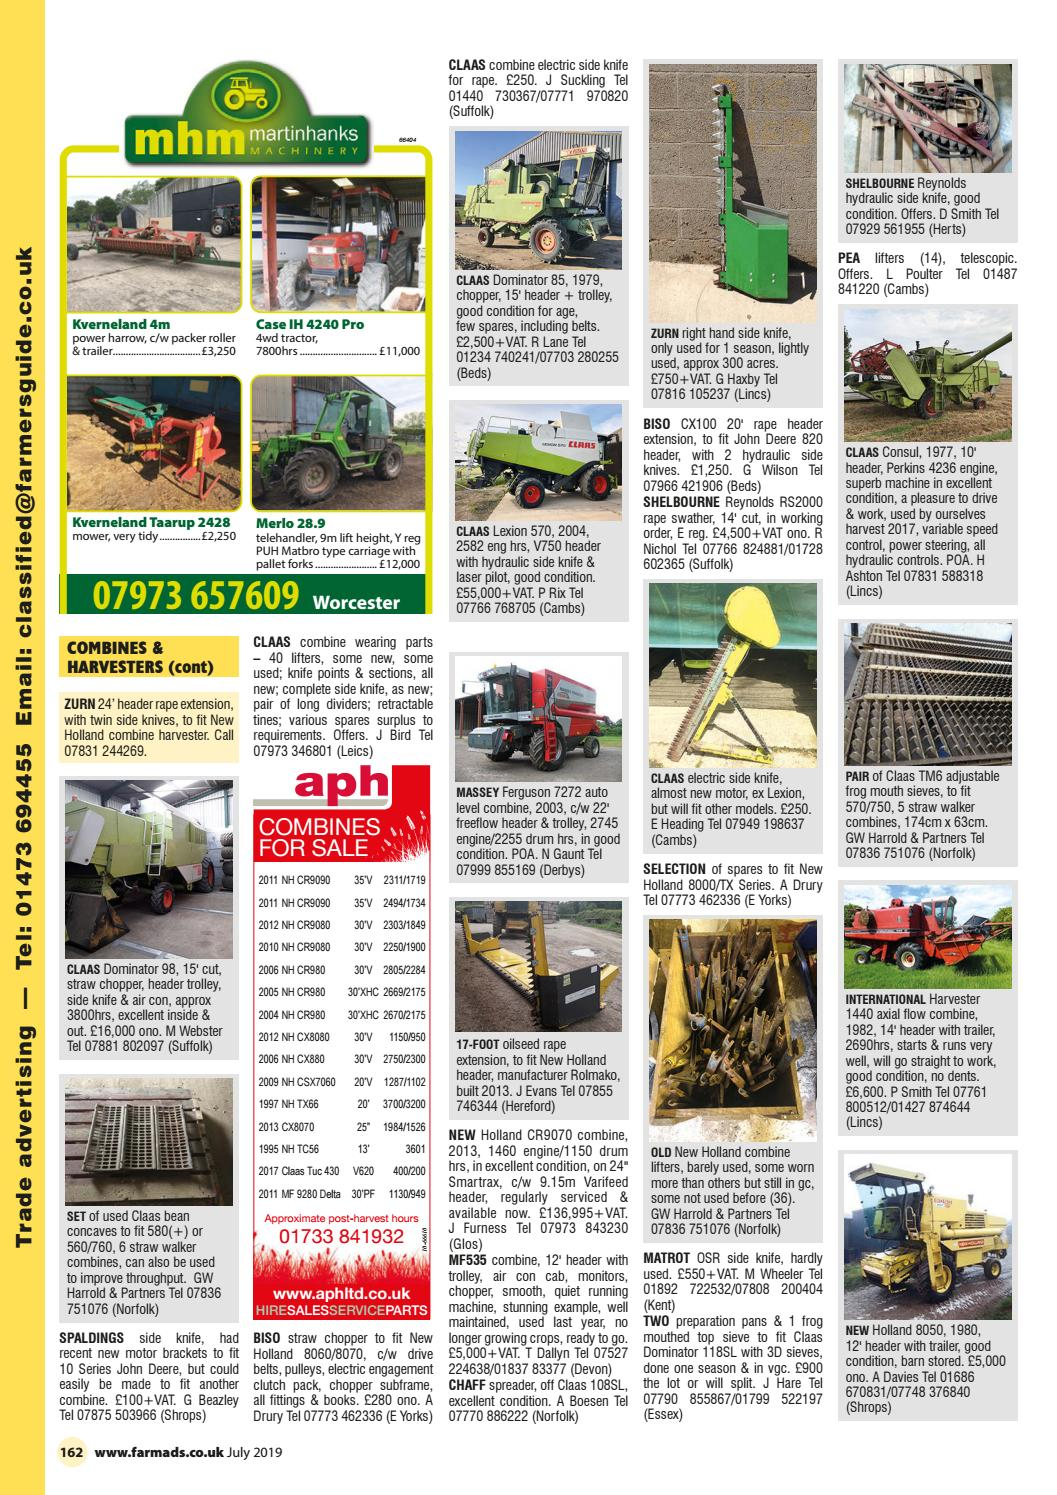 Farmers Guide July 2019 by Farmers Guide - issuu